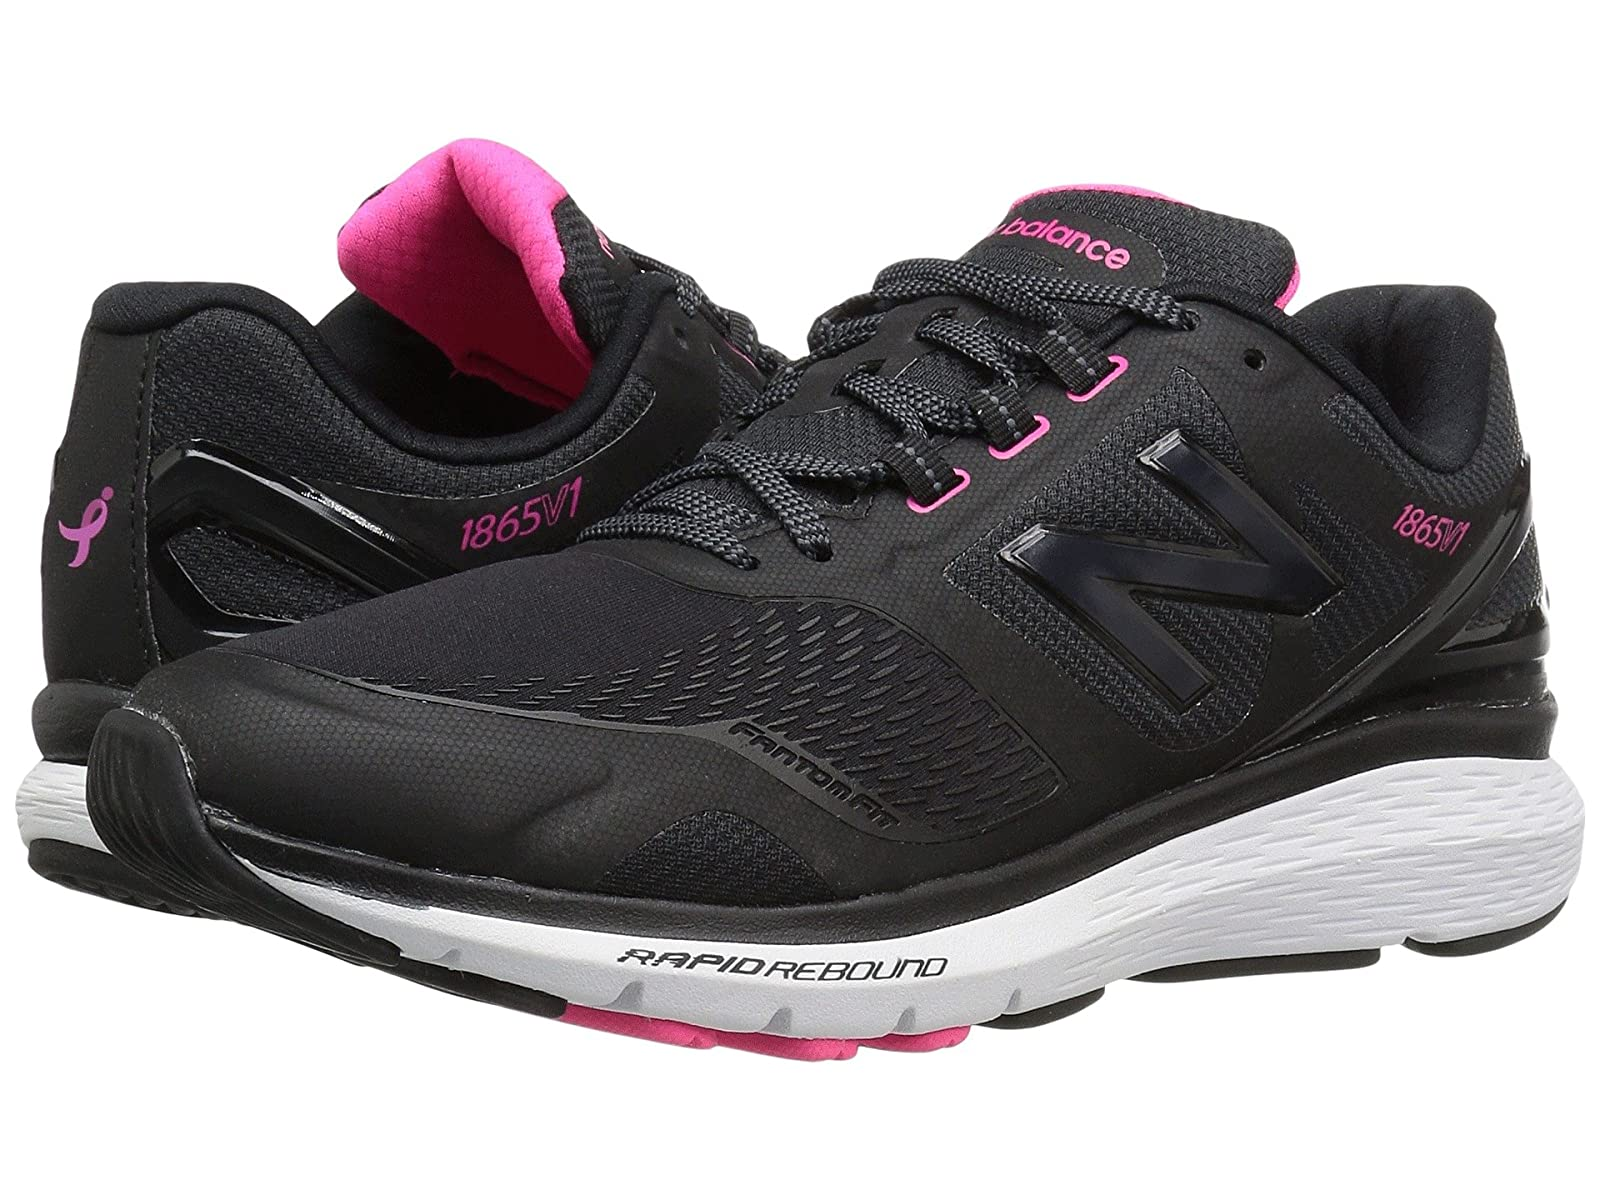 New Balance WW1865v1Cheap and distinctive eye-catching shoes